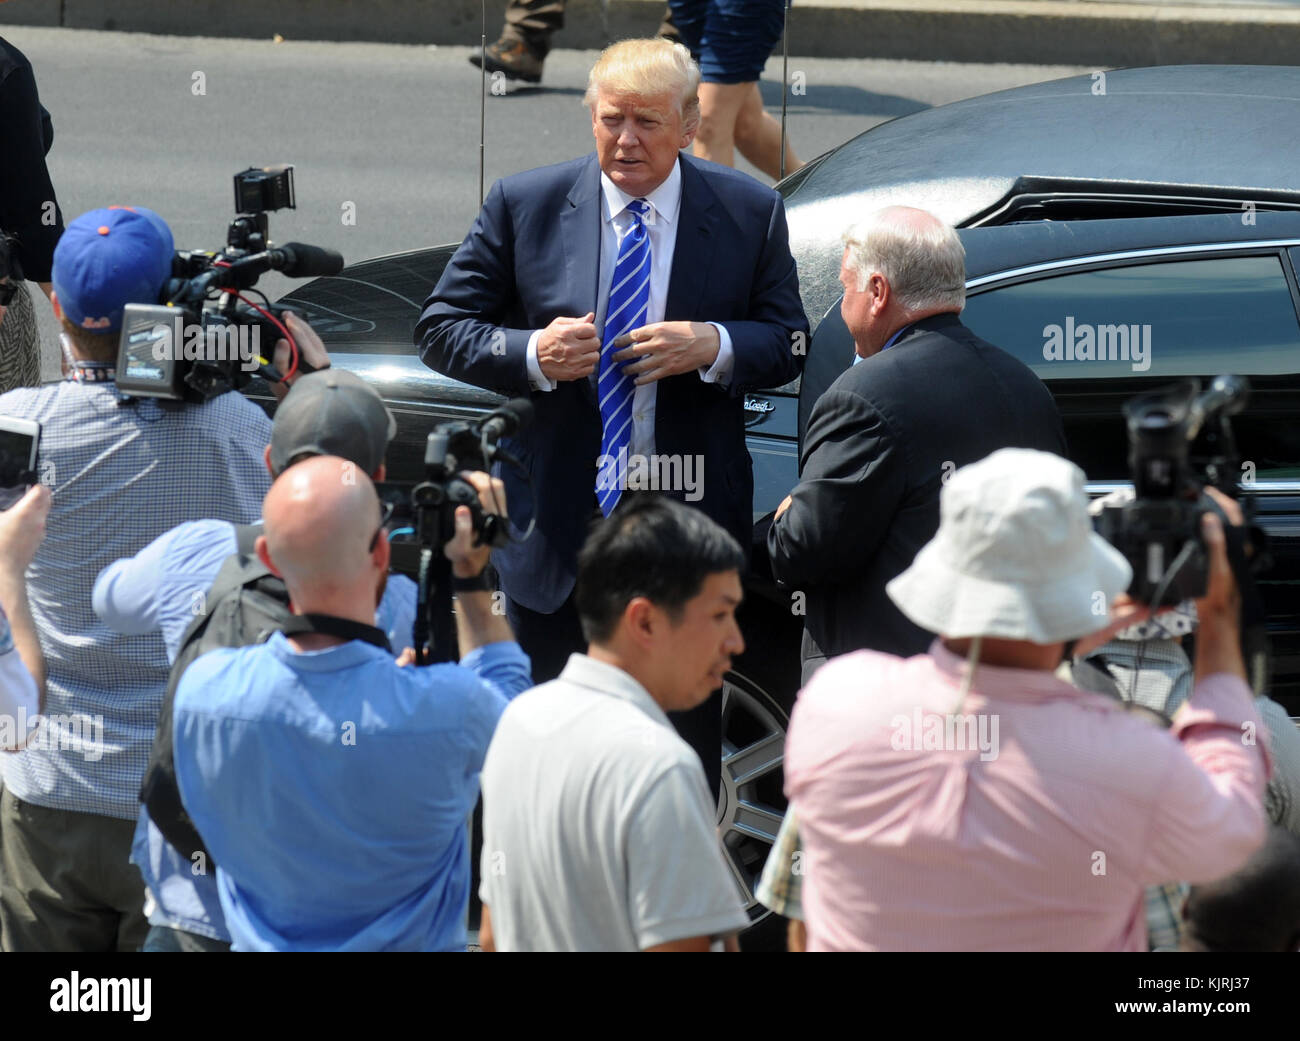 NEW YORK, NY - AUGUST 17: Republican Presidential hopeful Donald